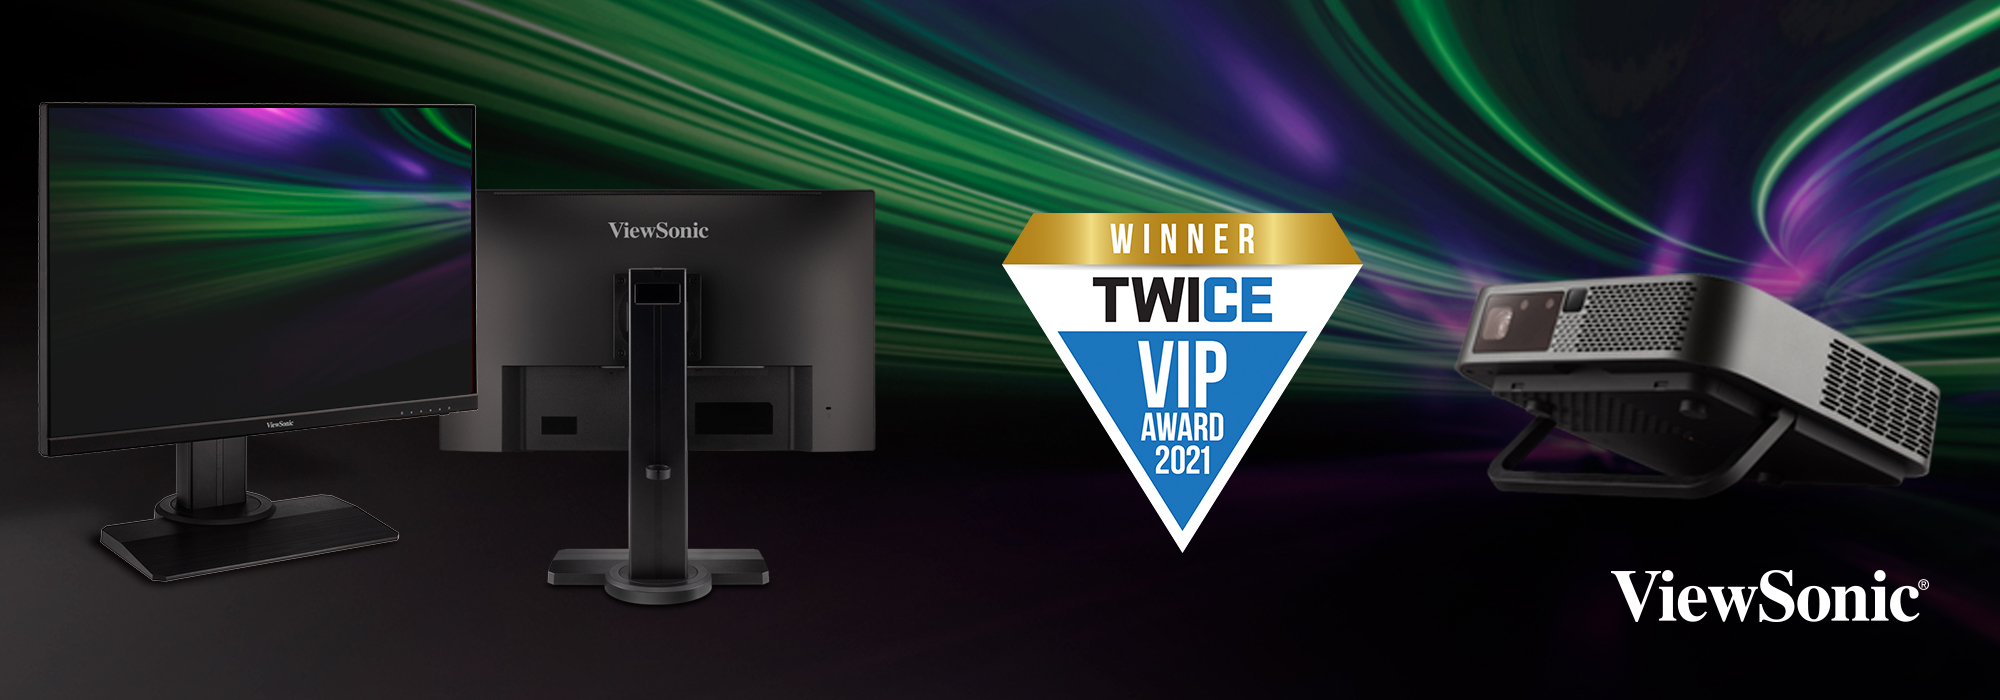 The ViewSonic XG2705-2K and M2e Products Honored with a 2021 TWICE VIP Award